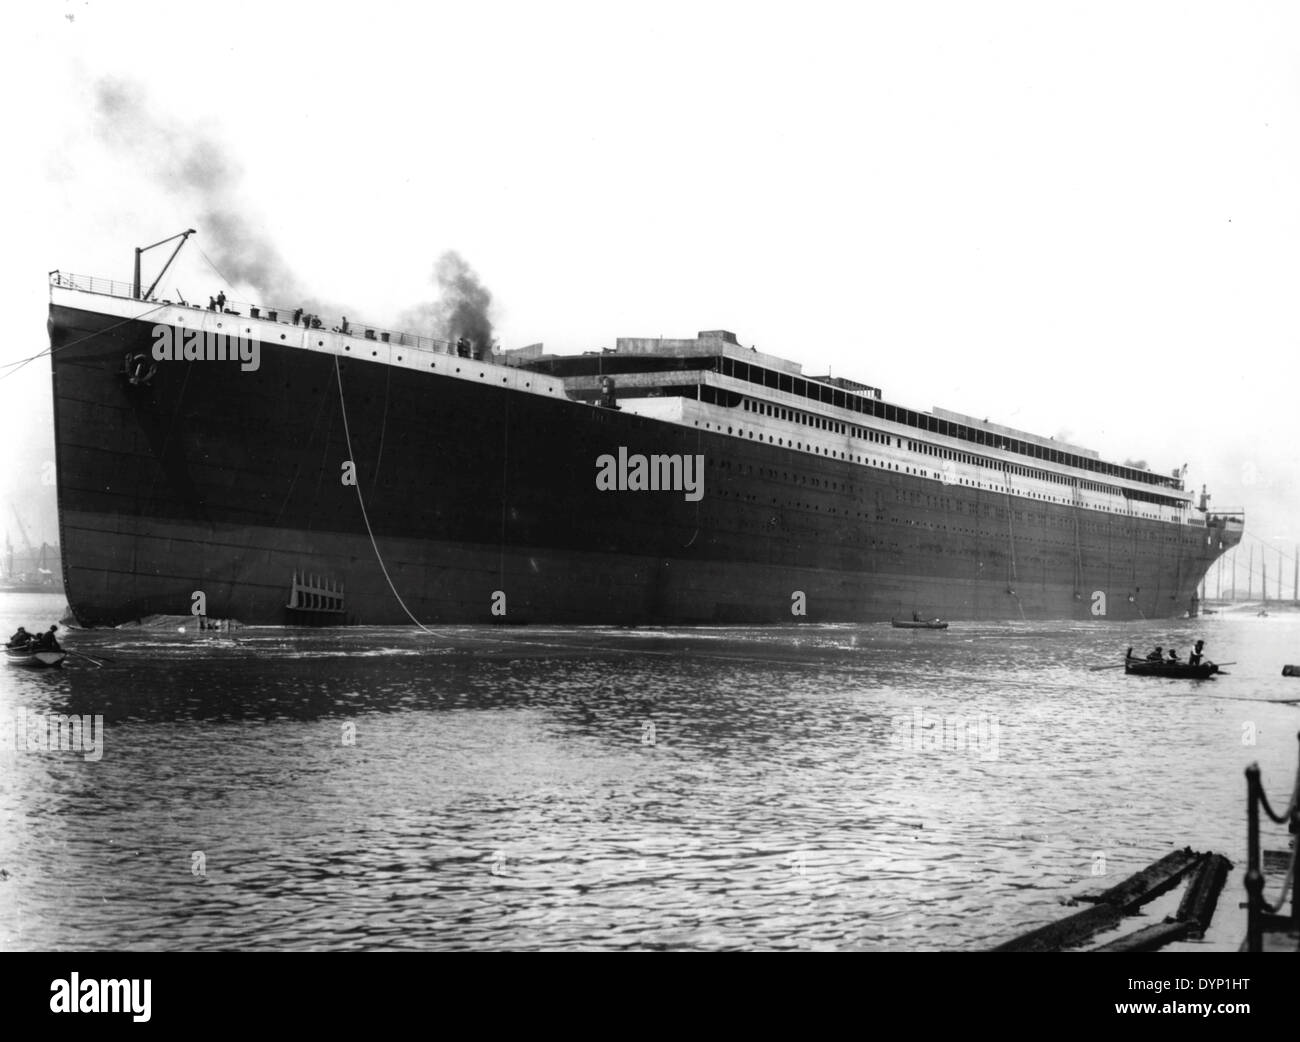 RMS TITANIC of the White Star Line launched at the Harland and Wolff shipyard in Belfast on 31 May 1911 - Stock Image